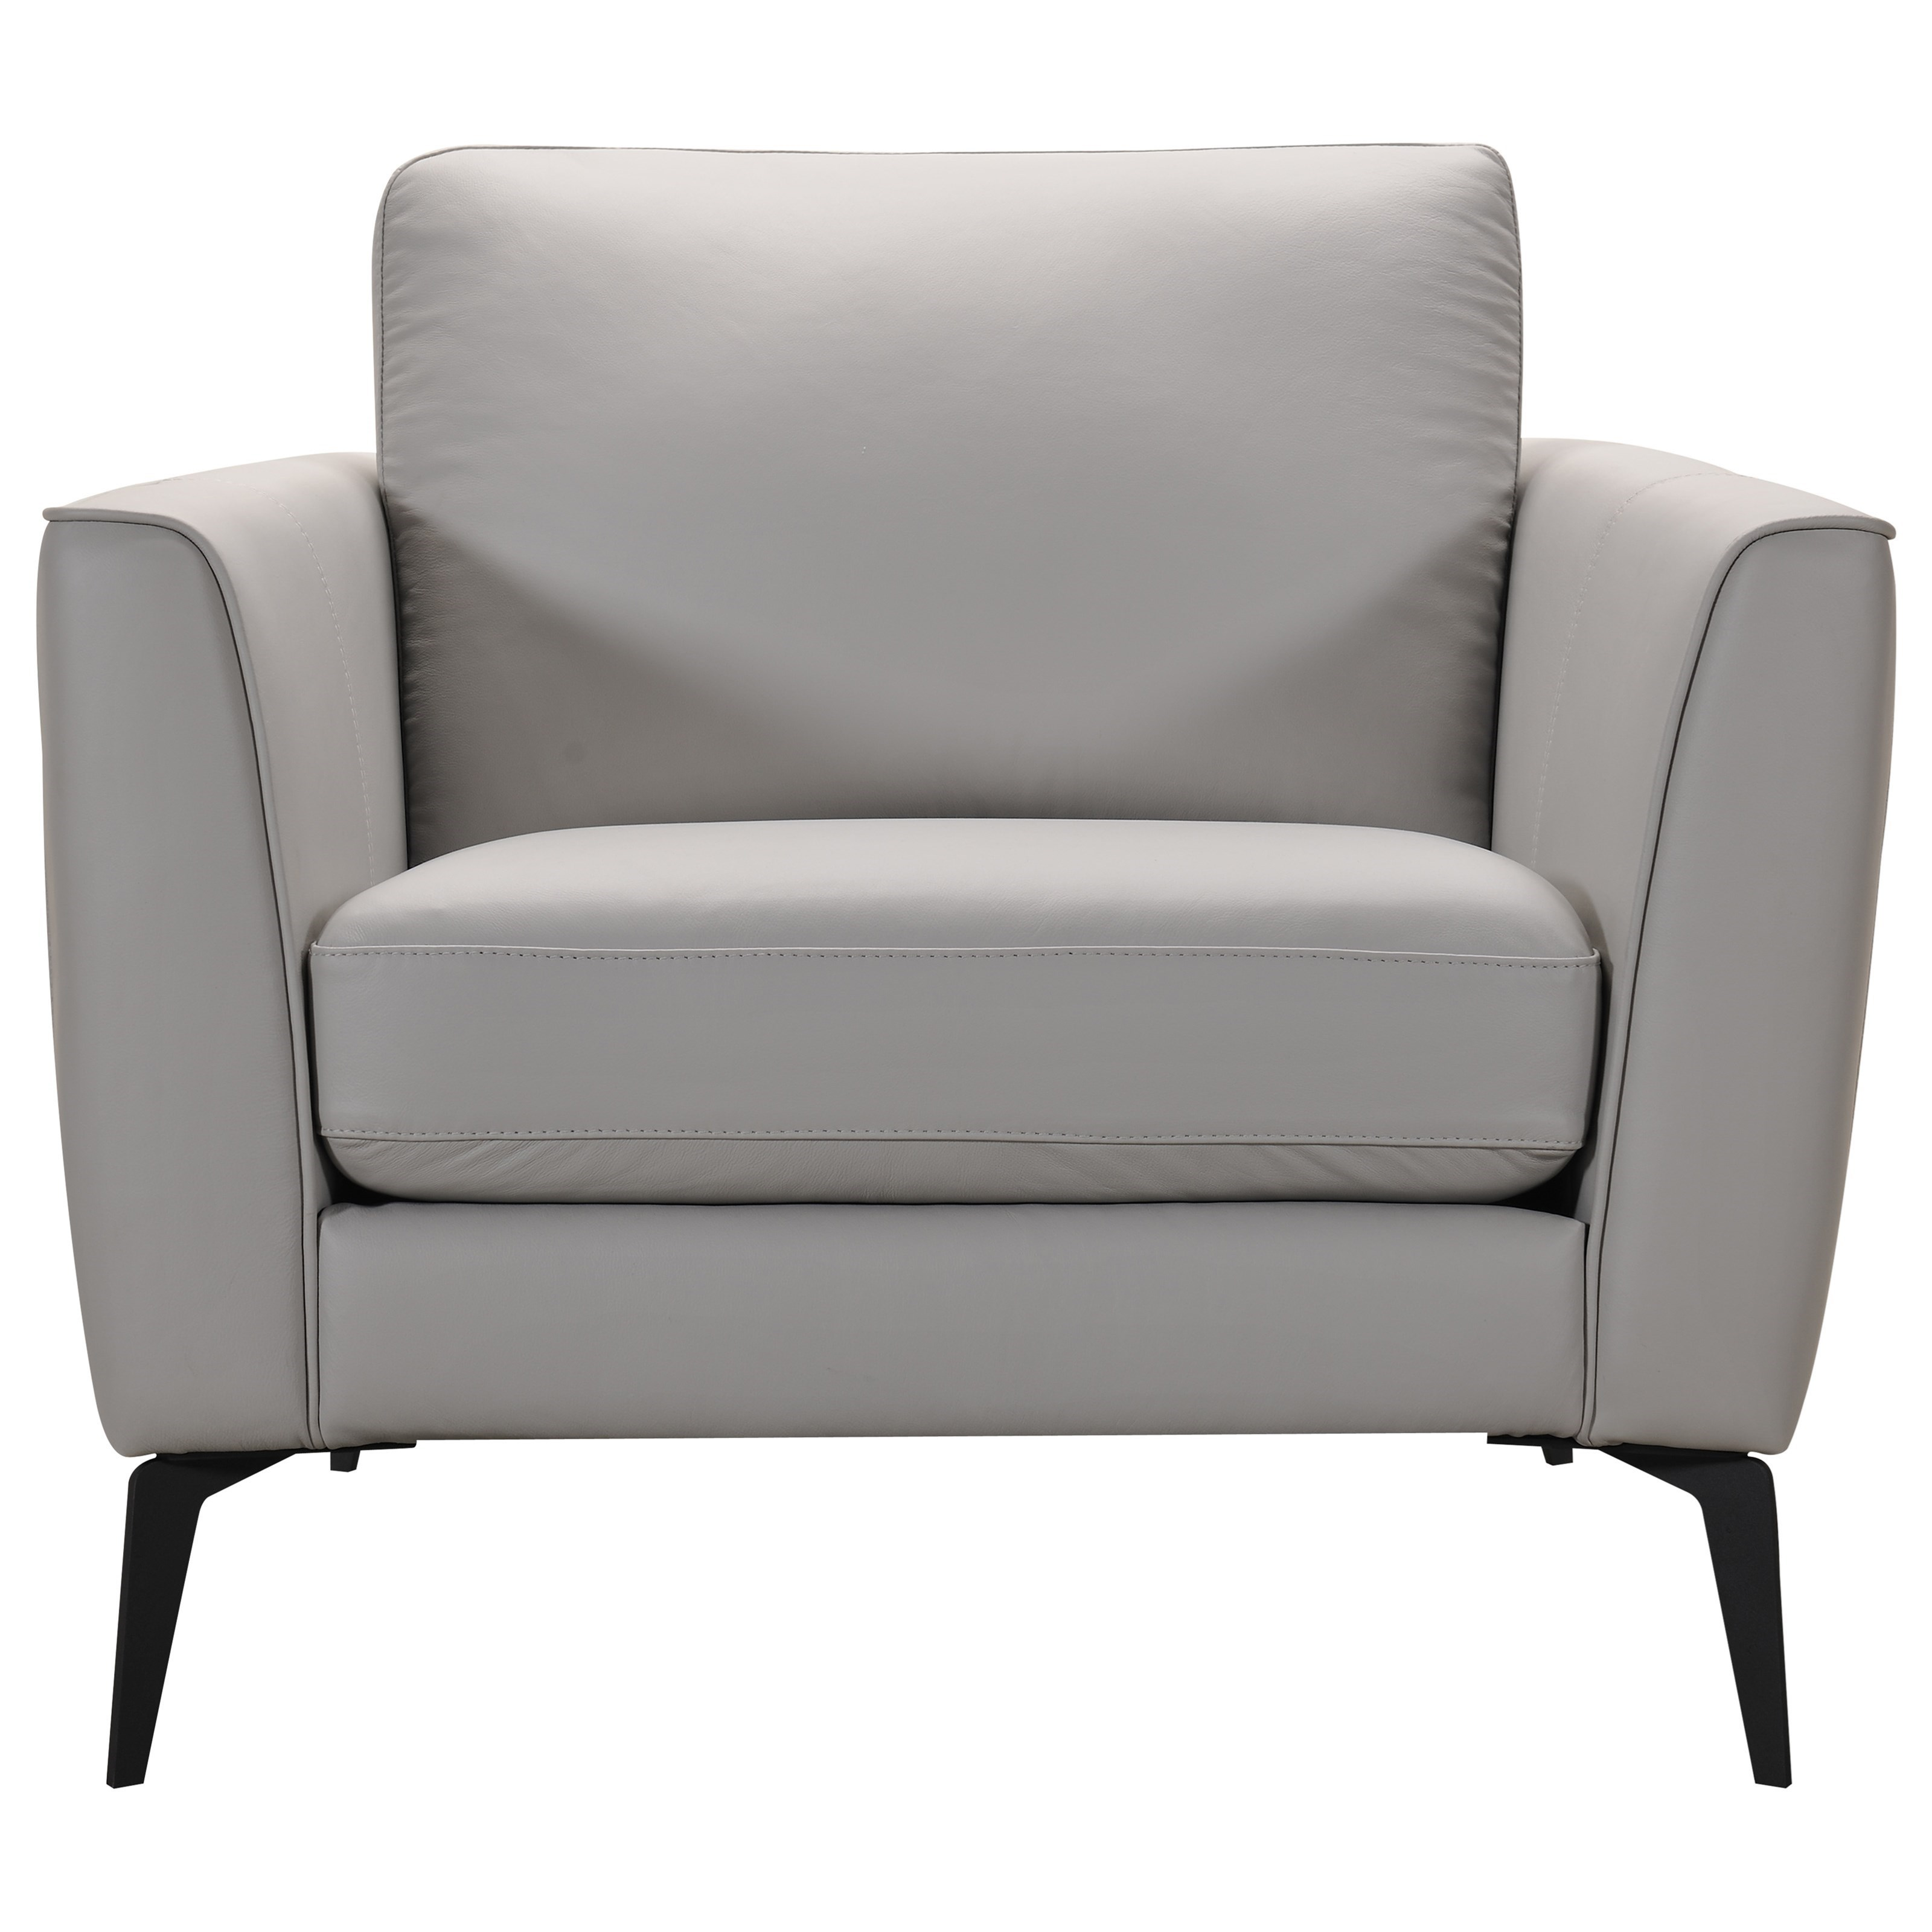 31800 Chair by Violino at Dunk & Bright Furniture